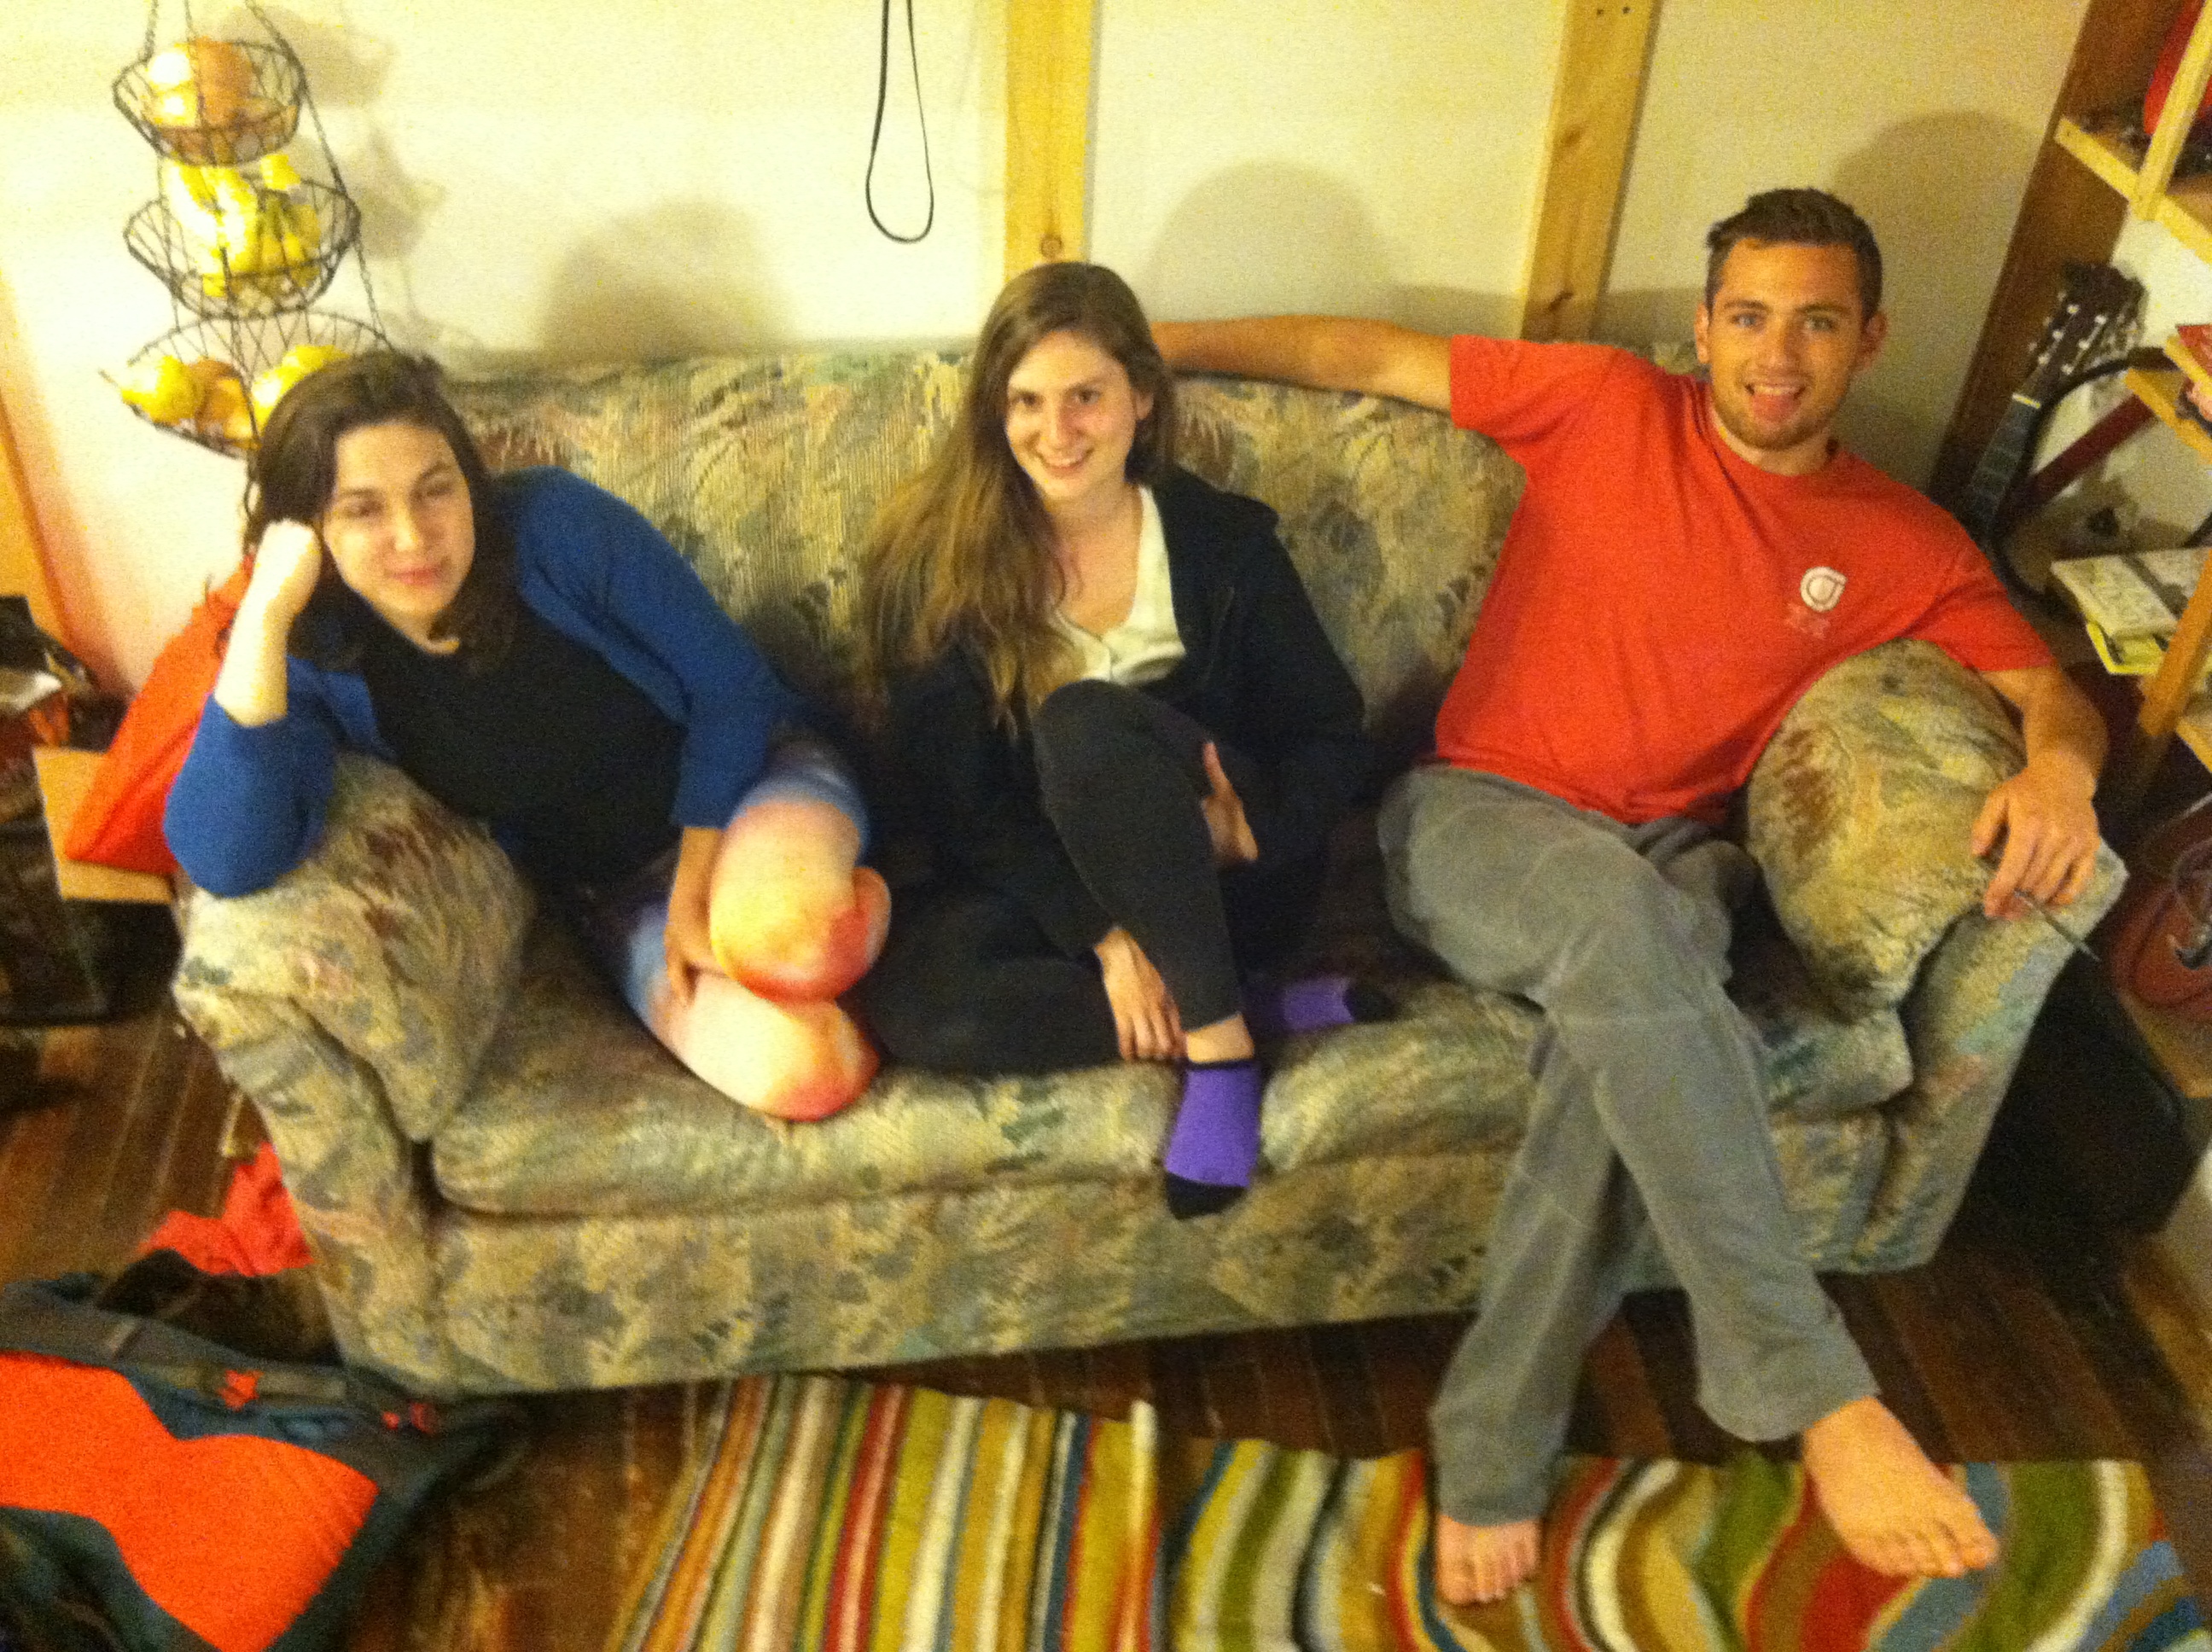 New Paltz Students Find $40K in a Couch